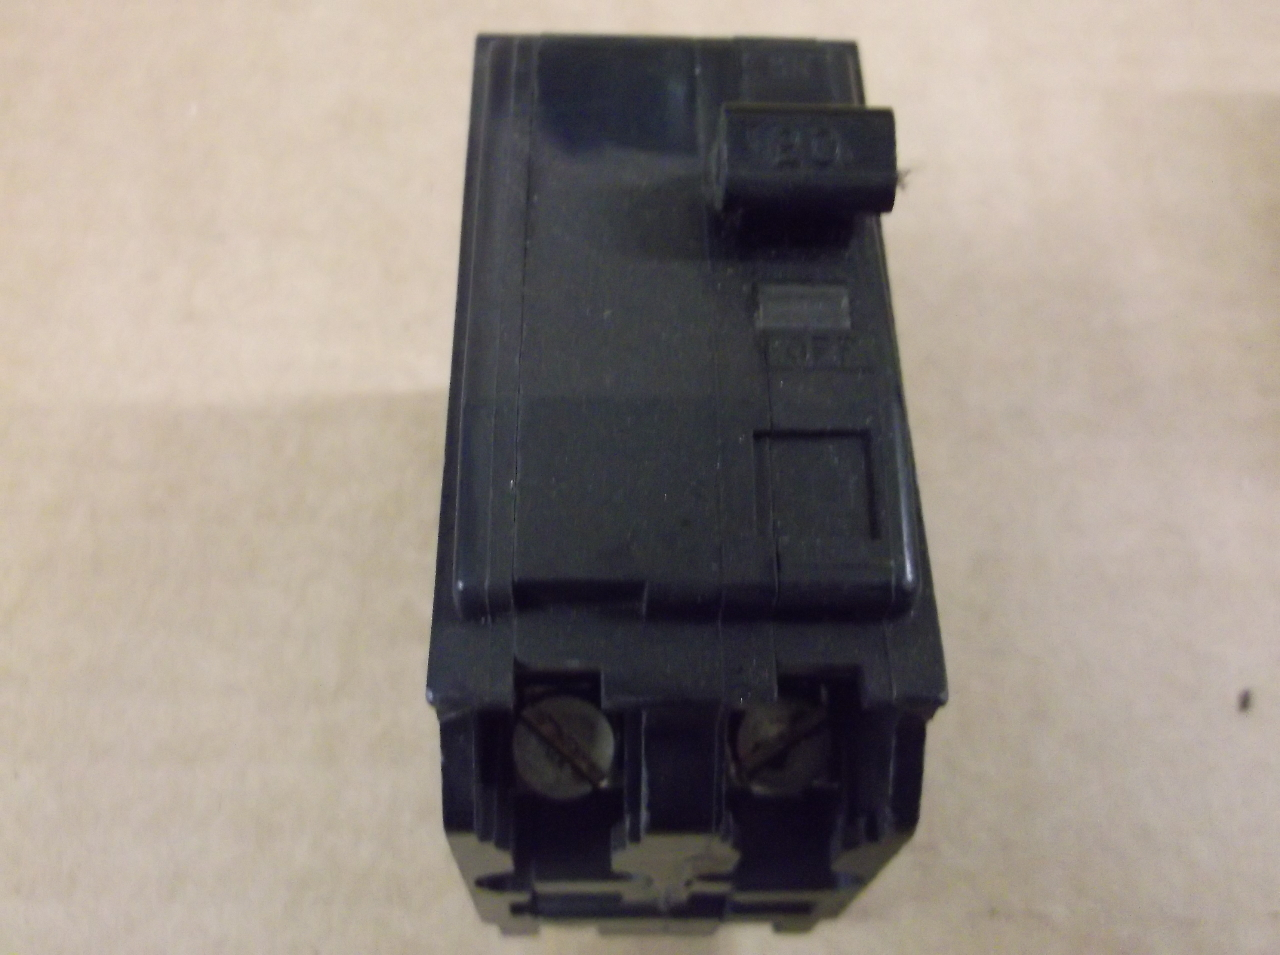 type hacr e11592 wiring diagram lot of 20 square d circuit breakers 20 amp hacr type ...